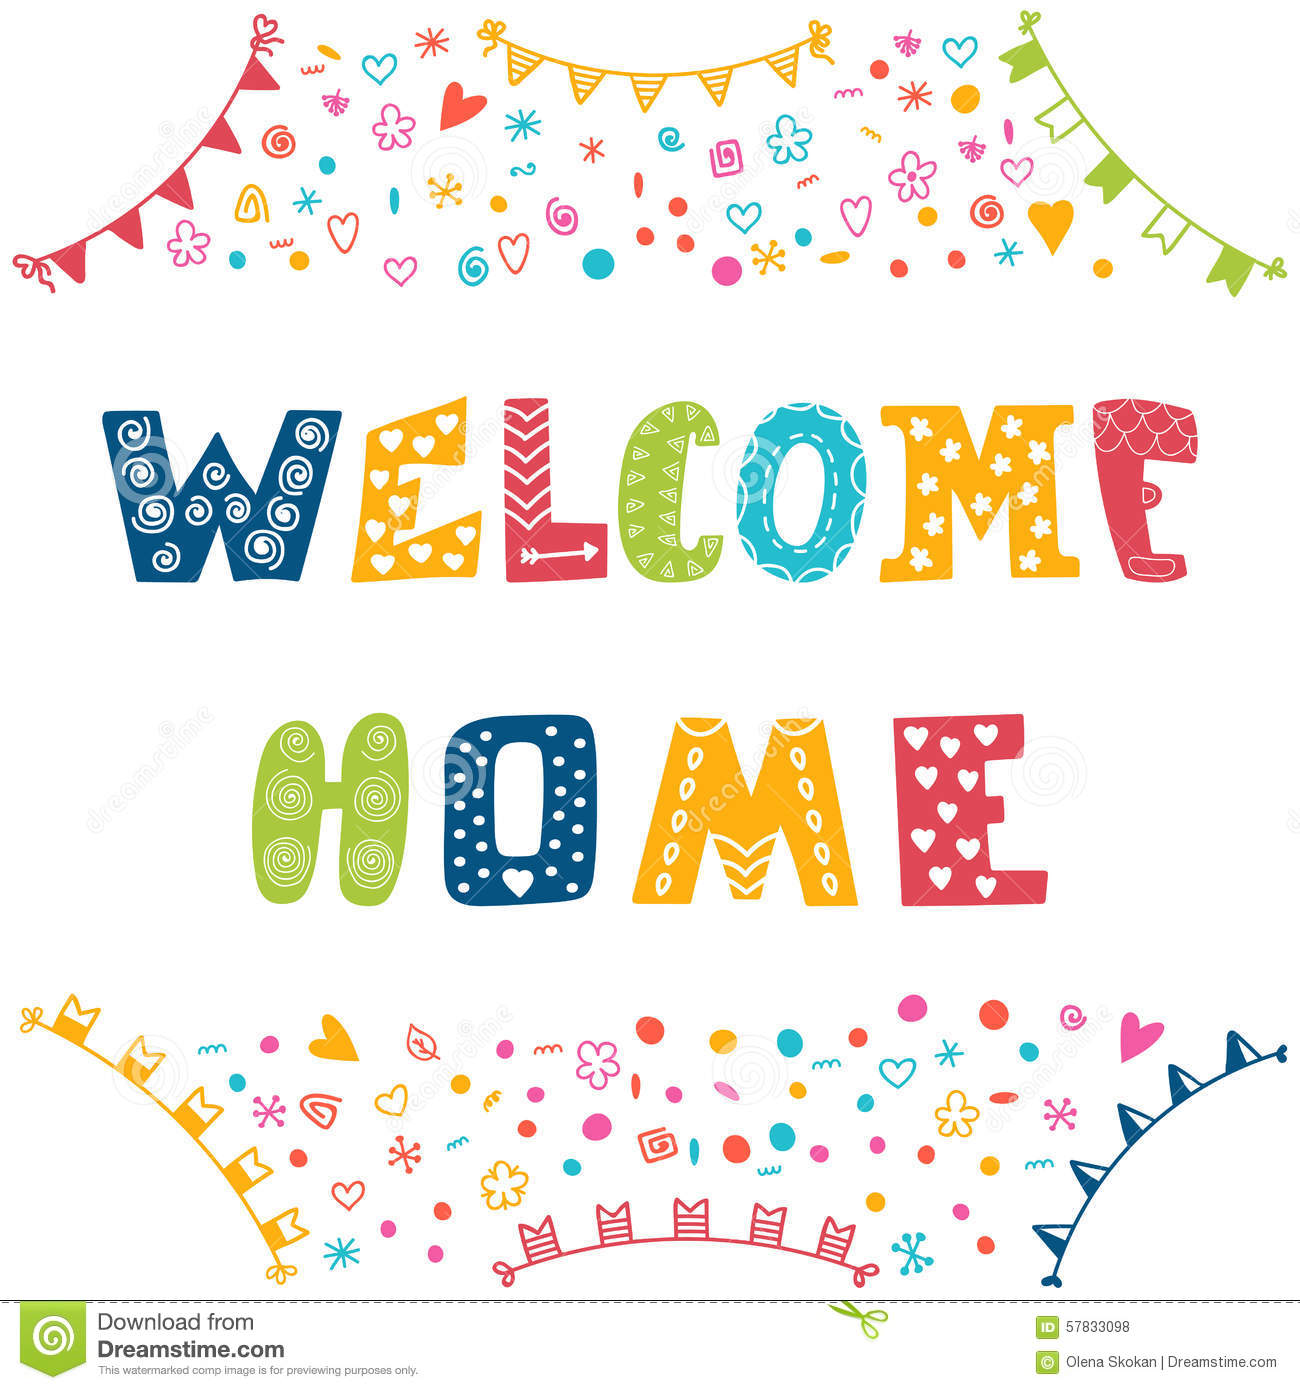 welcome-home-text-colorful-design-elements-vector-illustration-57833098.jpg